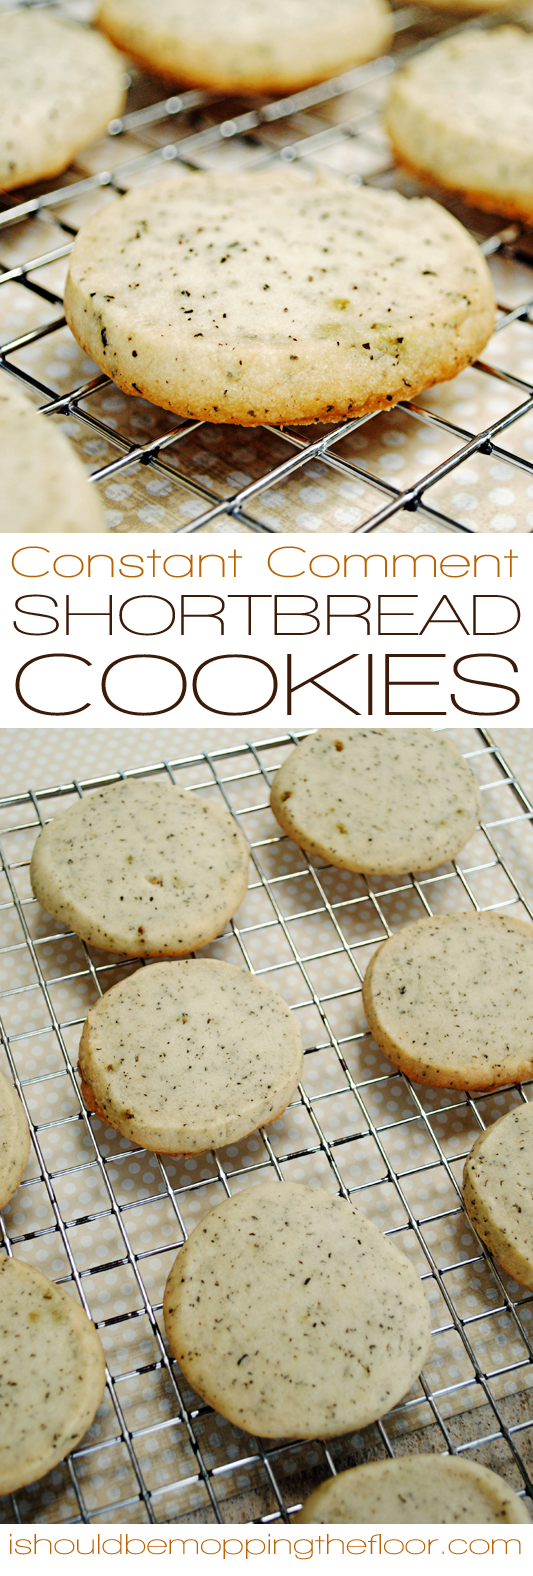 Constant Comment Shortbread Cookies | Delicious, orange-infused shortbread cookies laced with Bigelow Tea (Constant Comment flavor). | Simple to make.